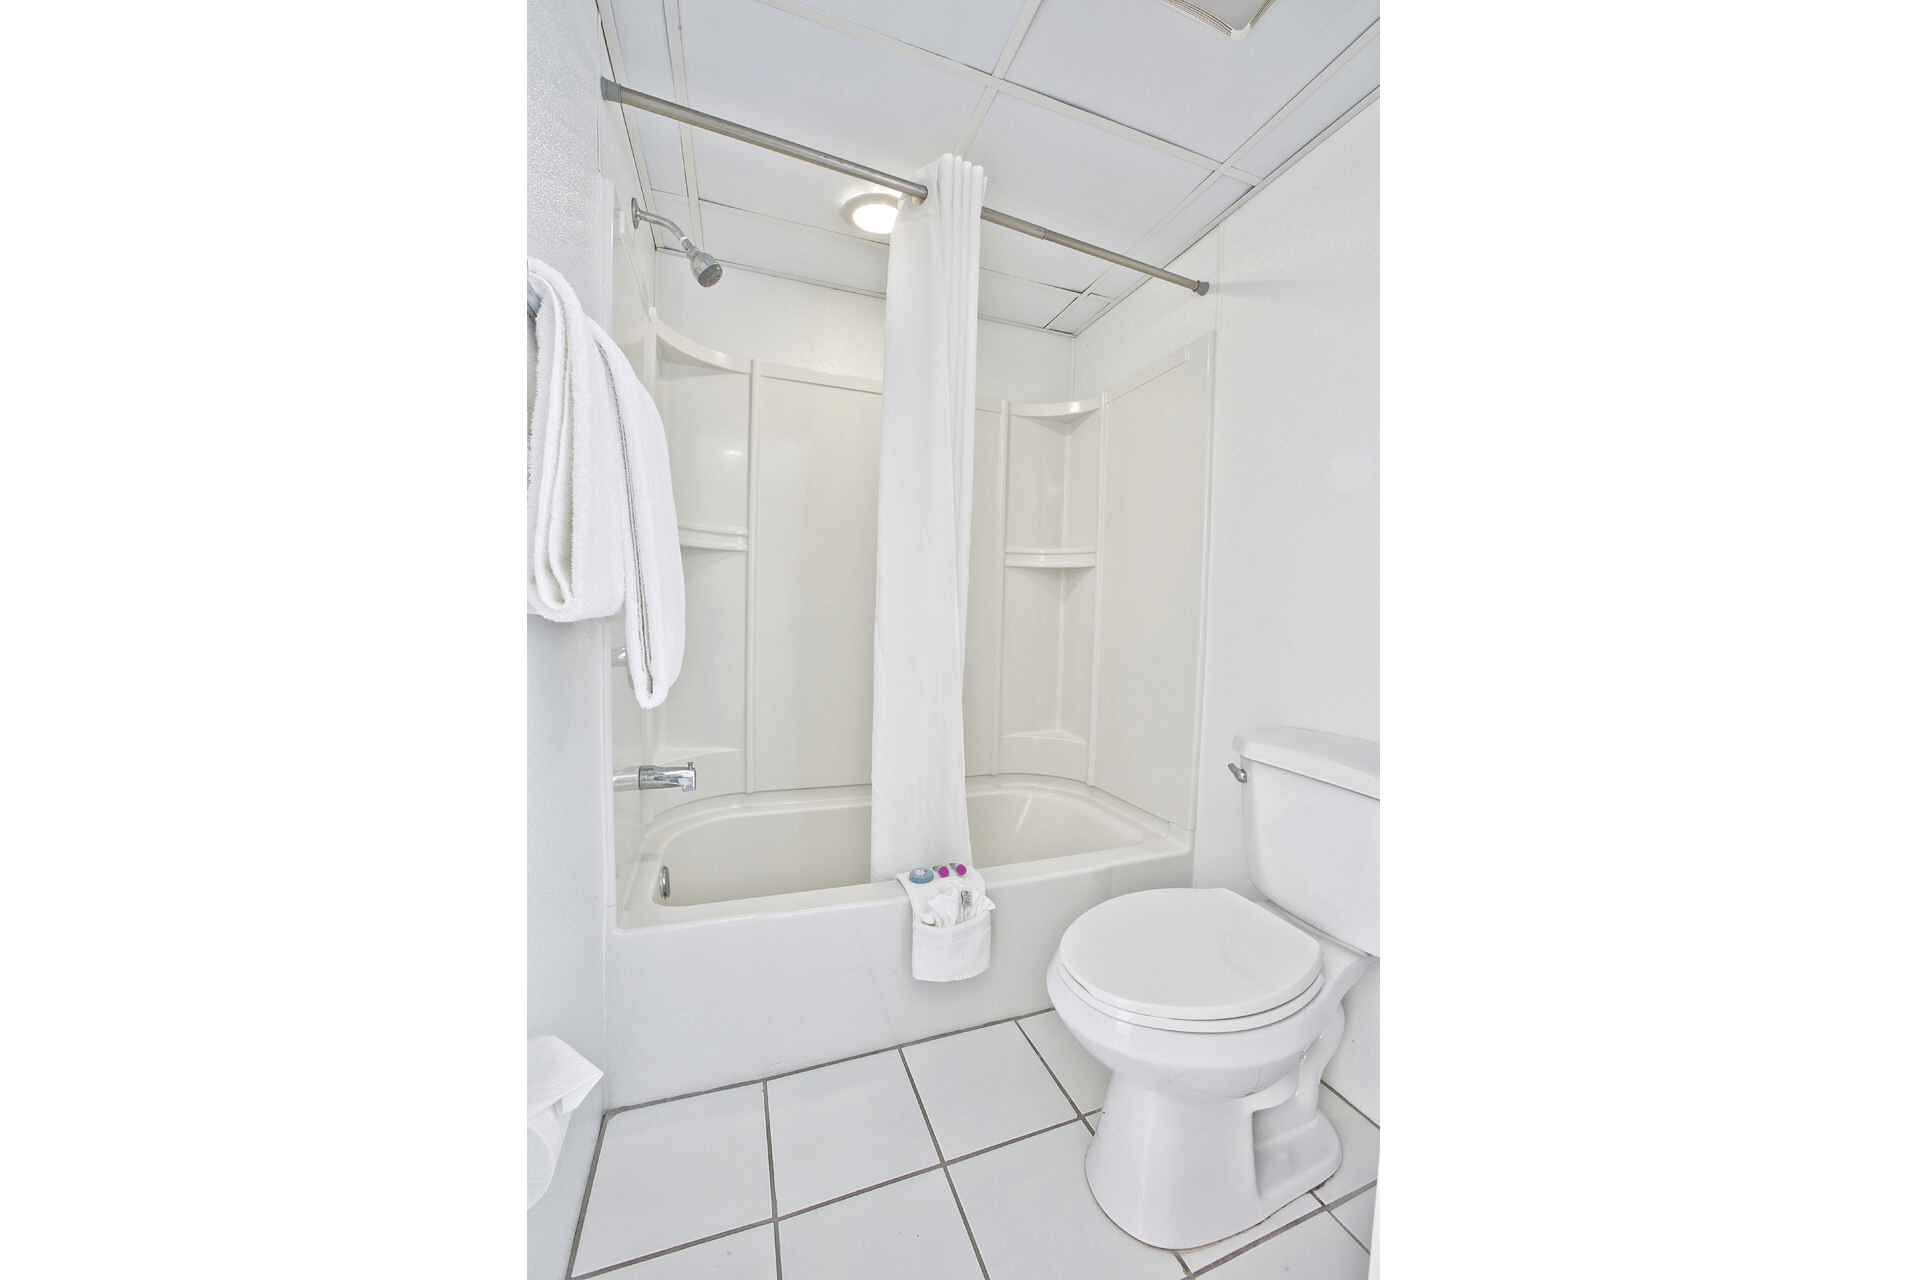 Bacehfront-Studio-Hotel-Bathroom-Ft-Myers-Beach